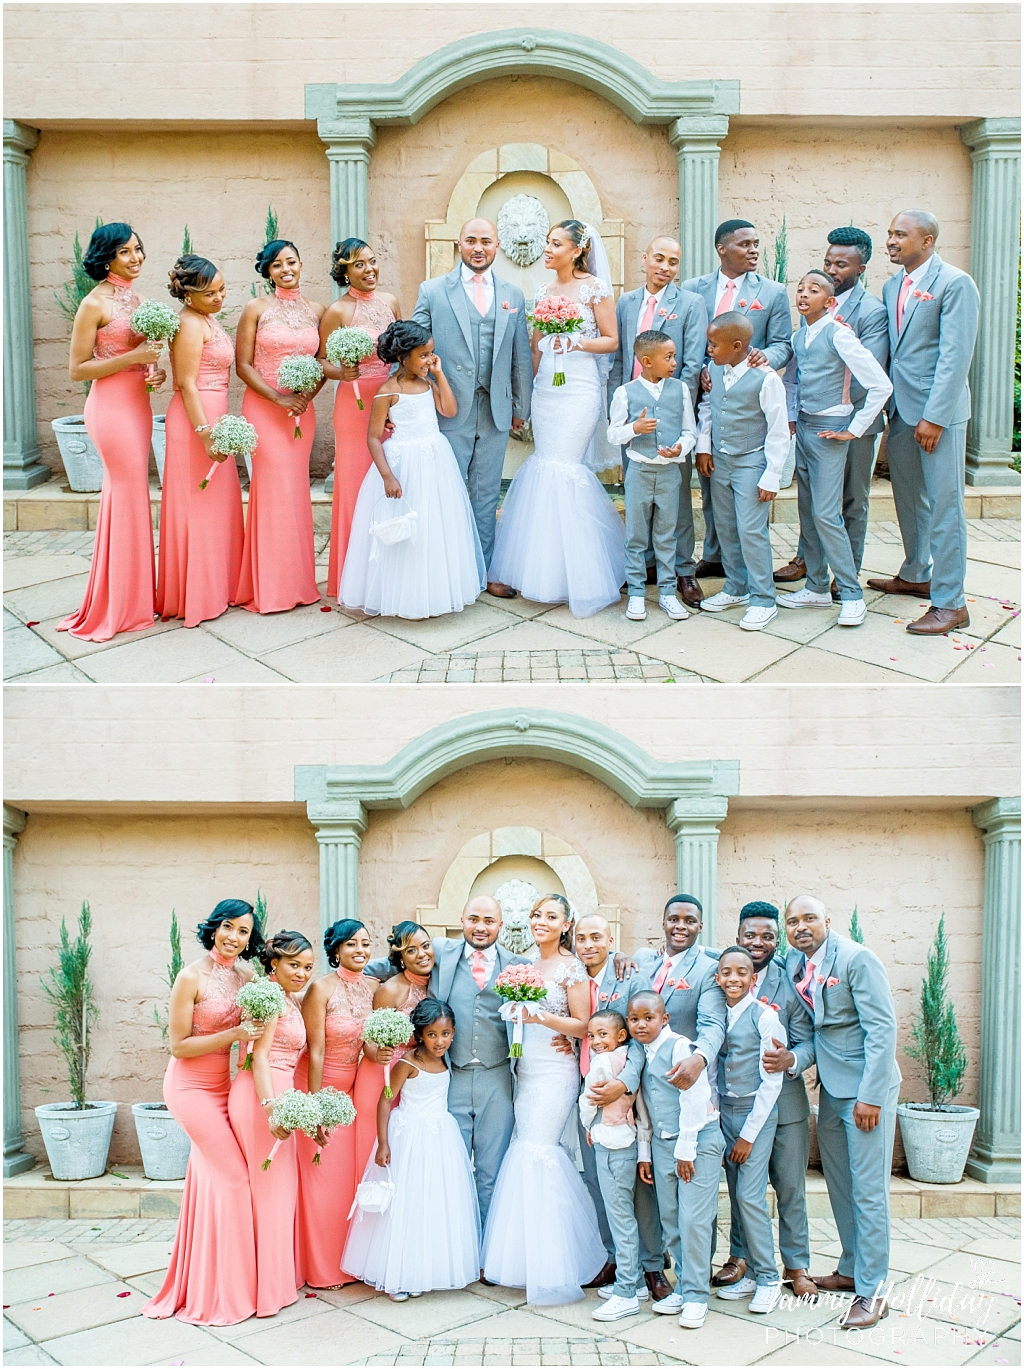 bride and groom with bridal party pink dresses and grey suits